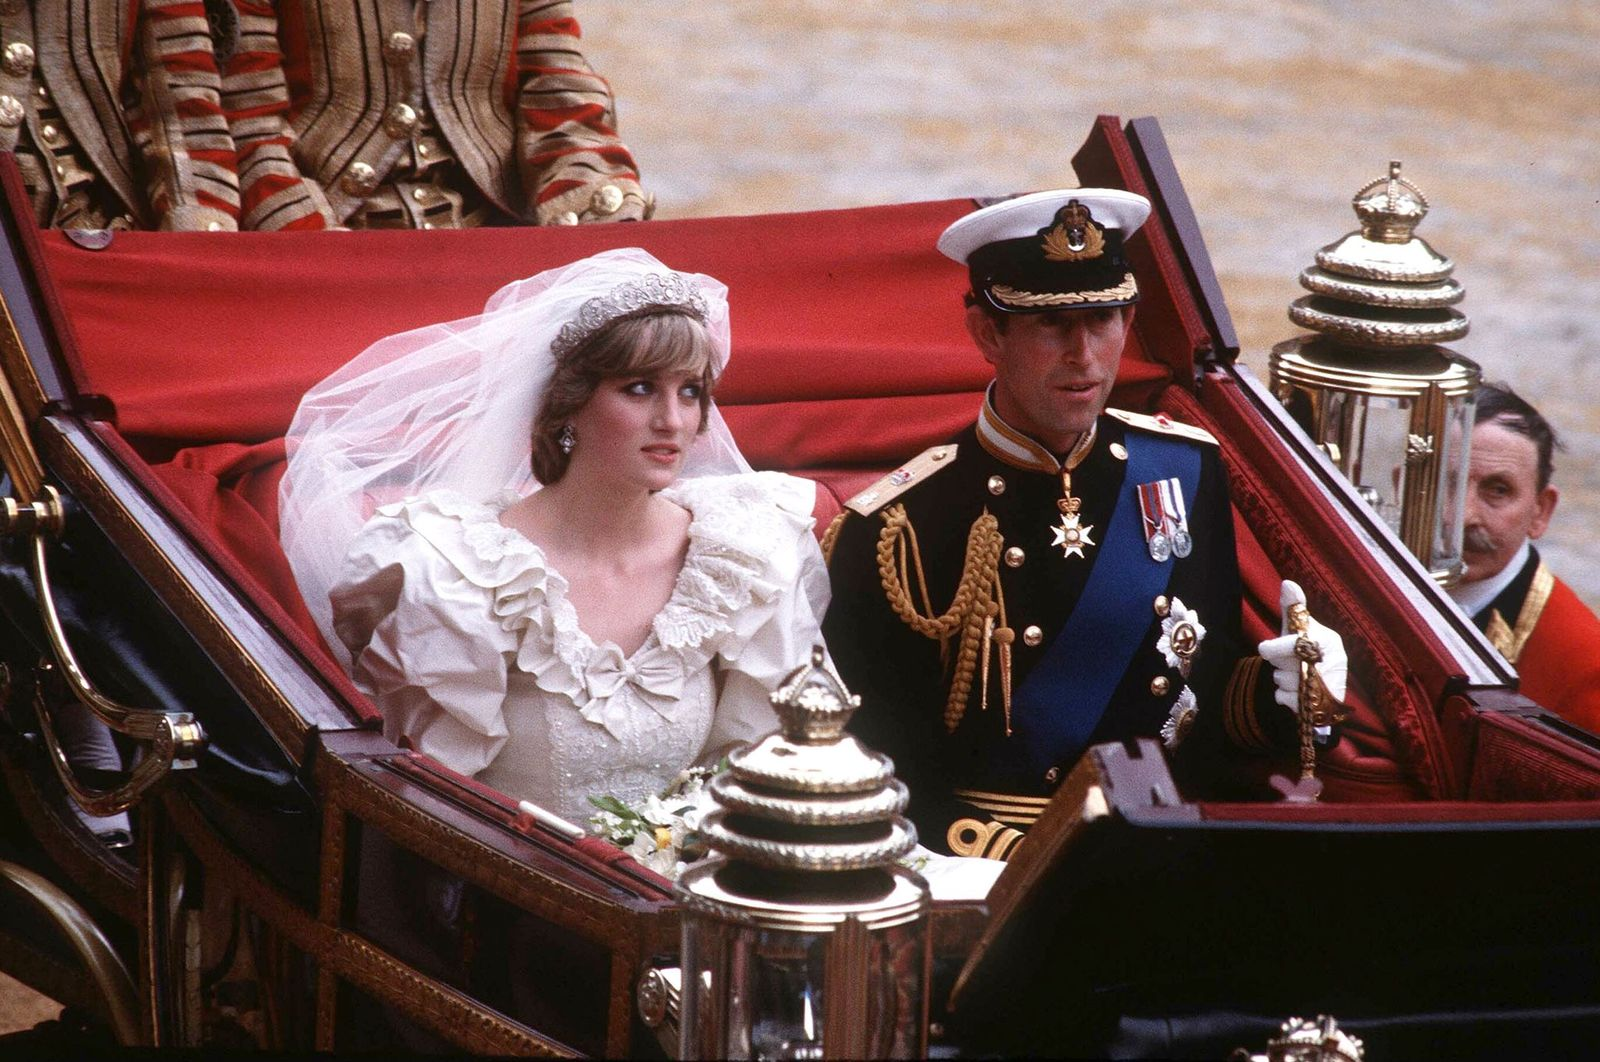 Prince Charles and Princess Diana on the way to Buckingham Palace after their wedding ceremony in London on July 29, 1981 | Photo: Getty Images